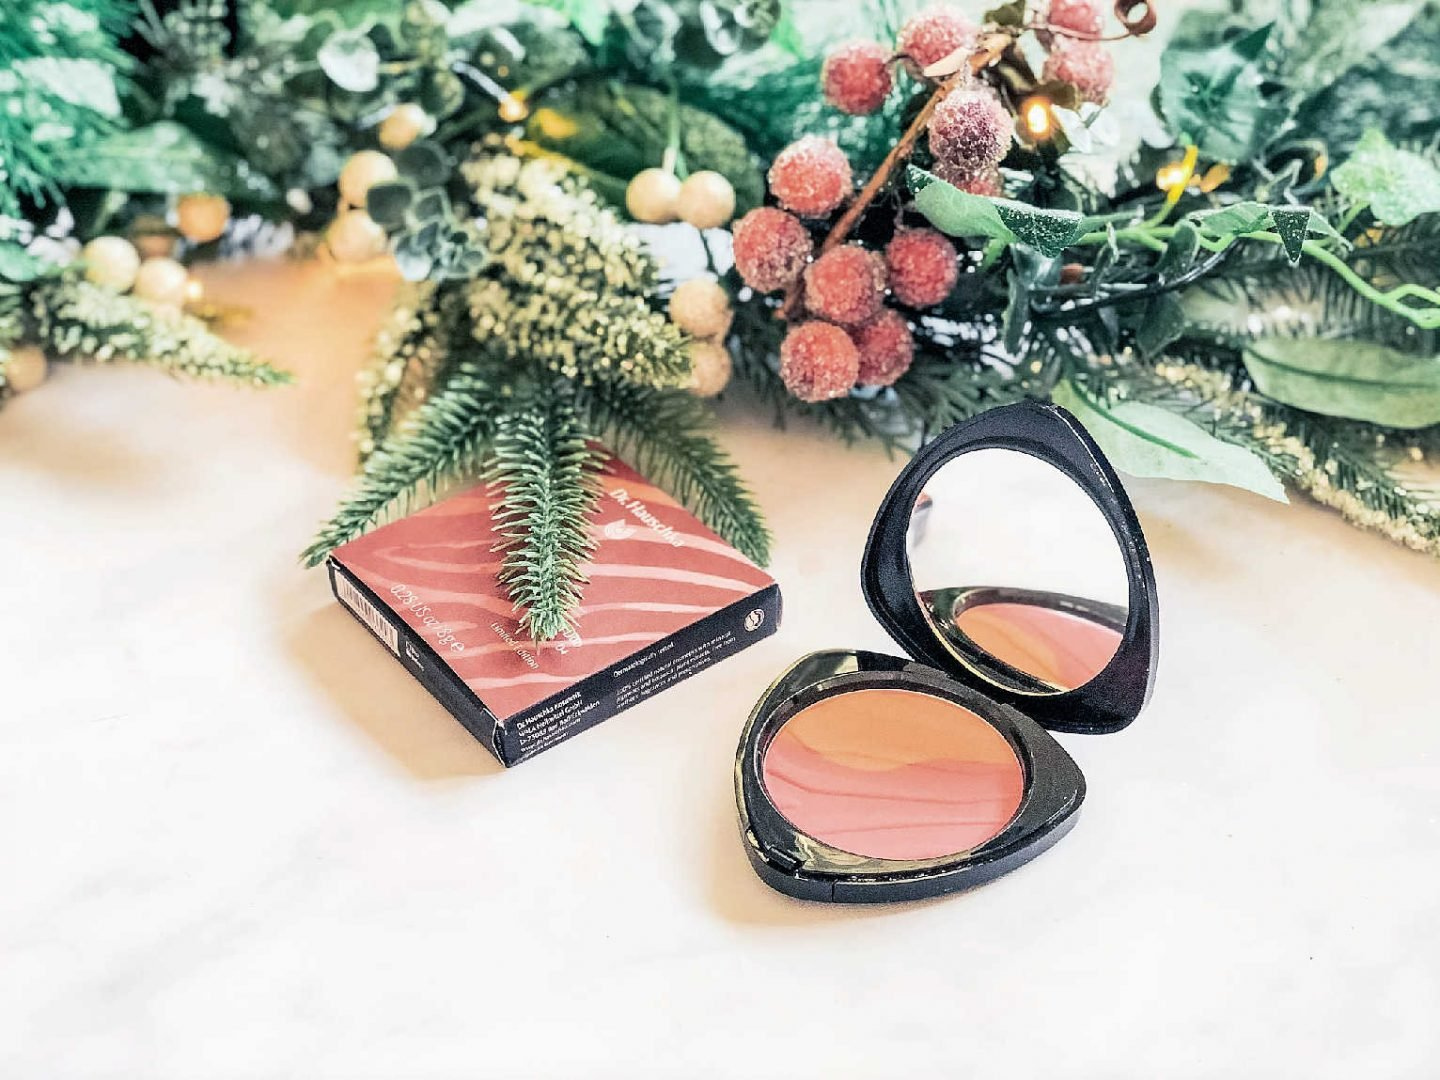 Bronzer and blusher in one